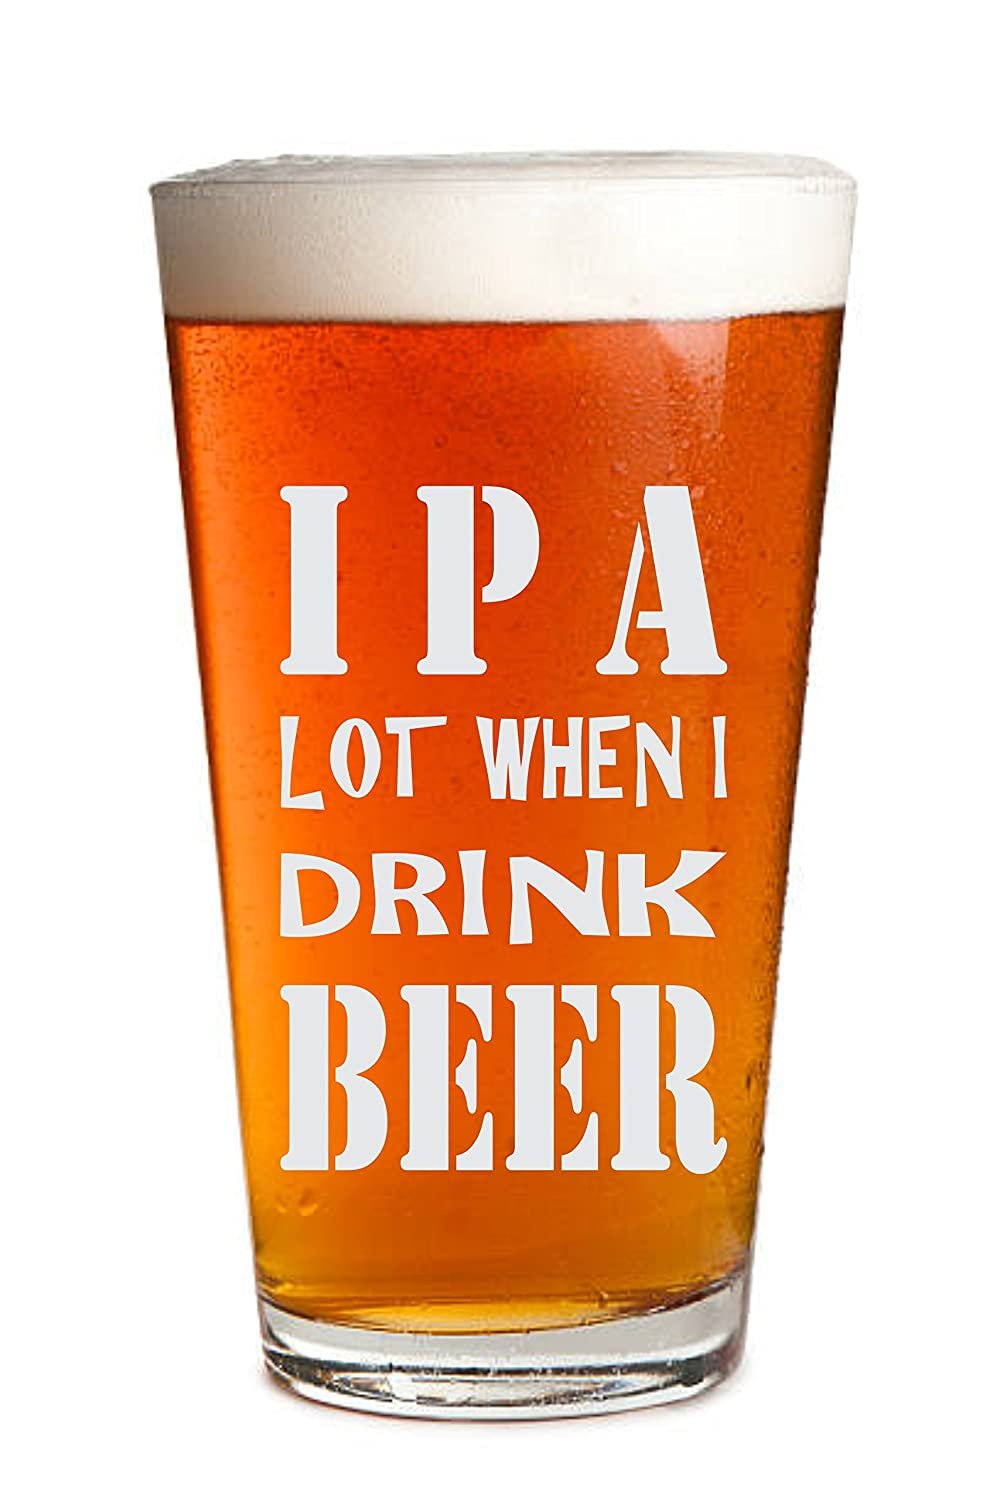 Engraved Beer Glass – IPA Lot When I Drink BEER - 16oz Clear Pint/Mixing Glass - Funny Gifts for Men and Women by Sandblast Creations